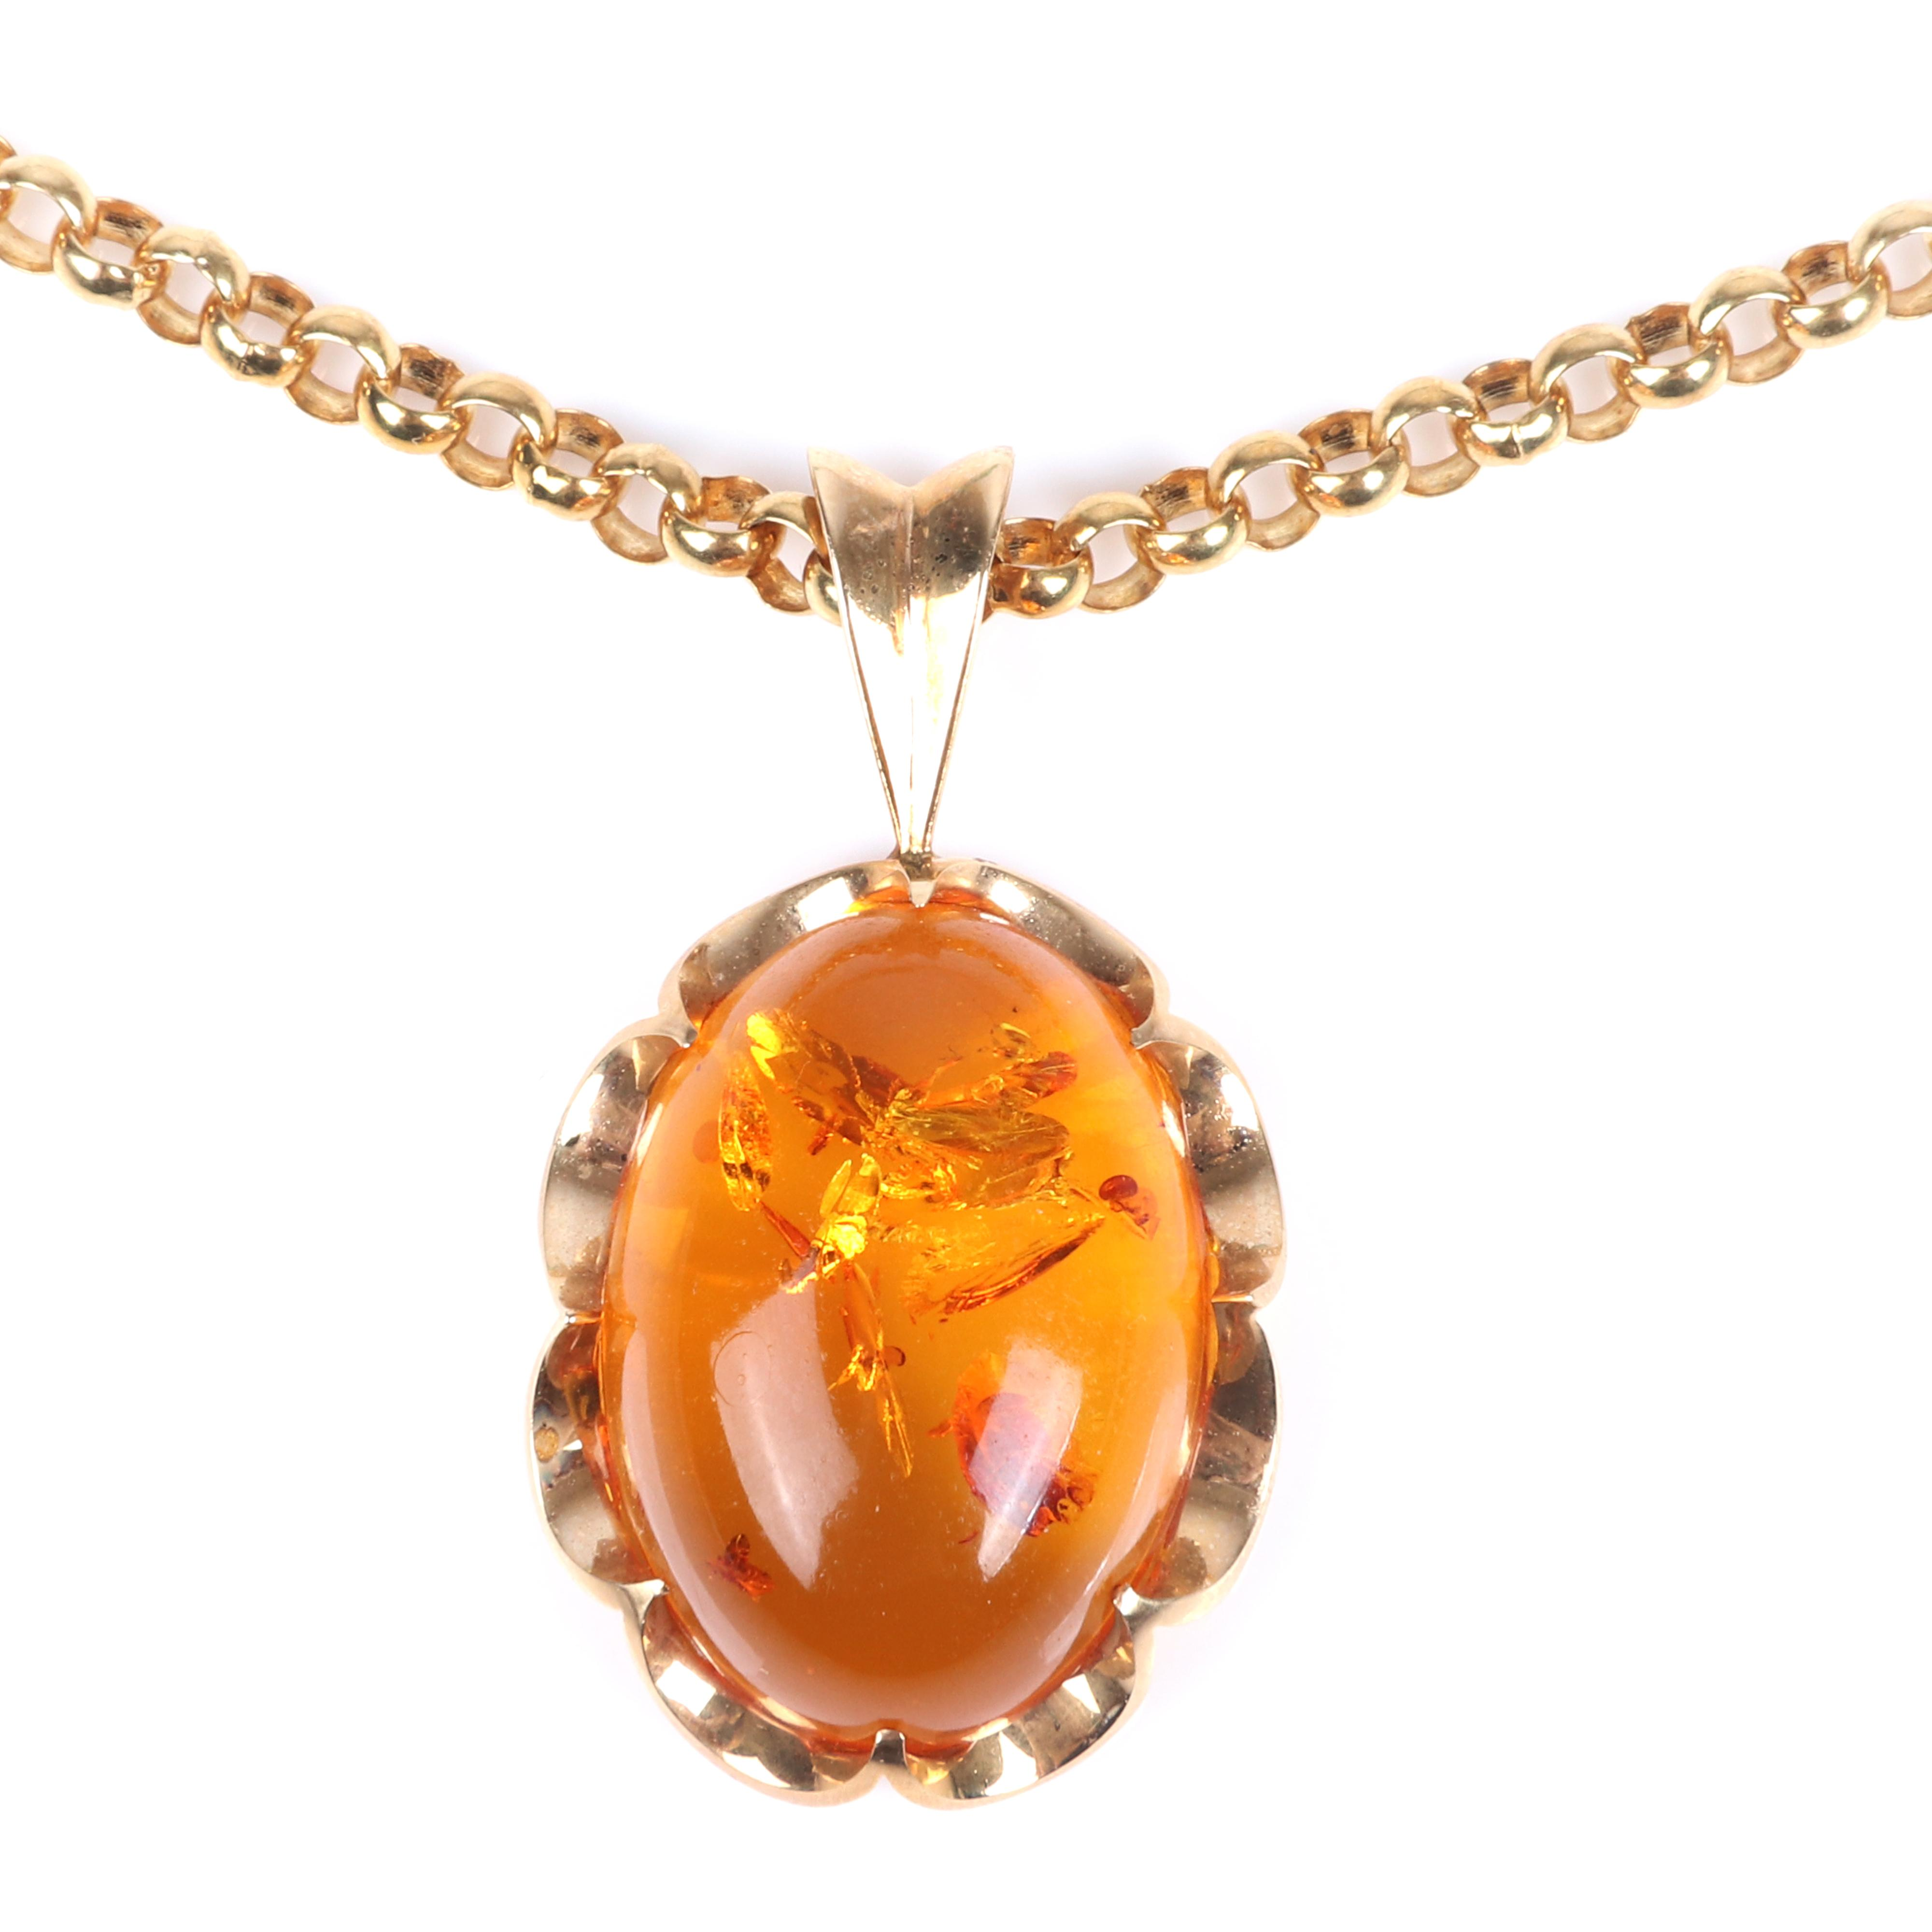 """Stamped 14K yellow gold mounted amber cabochon pendant on stamped 585 3.5mm circle link chain. 20""""L, 1 1/2"""" x 1"""" (pendant) 16.35 dwt"""